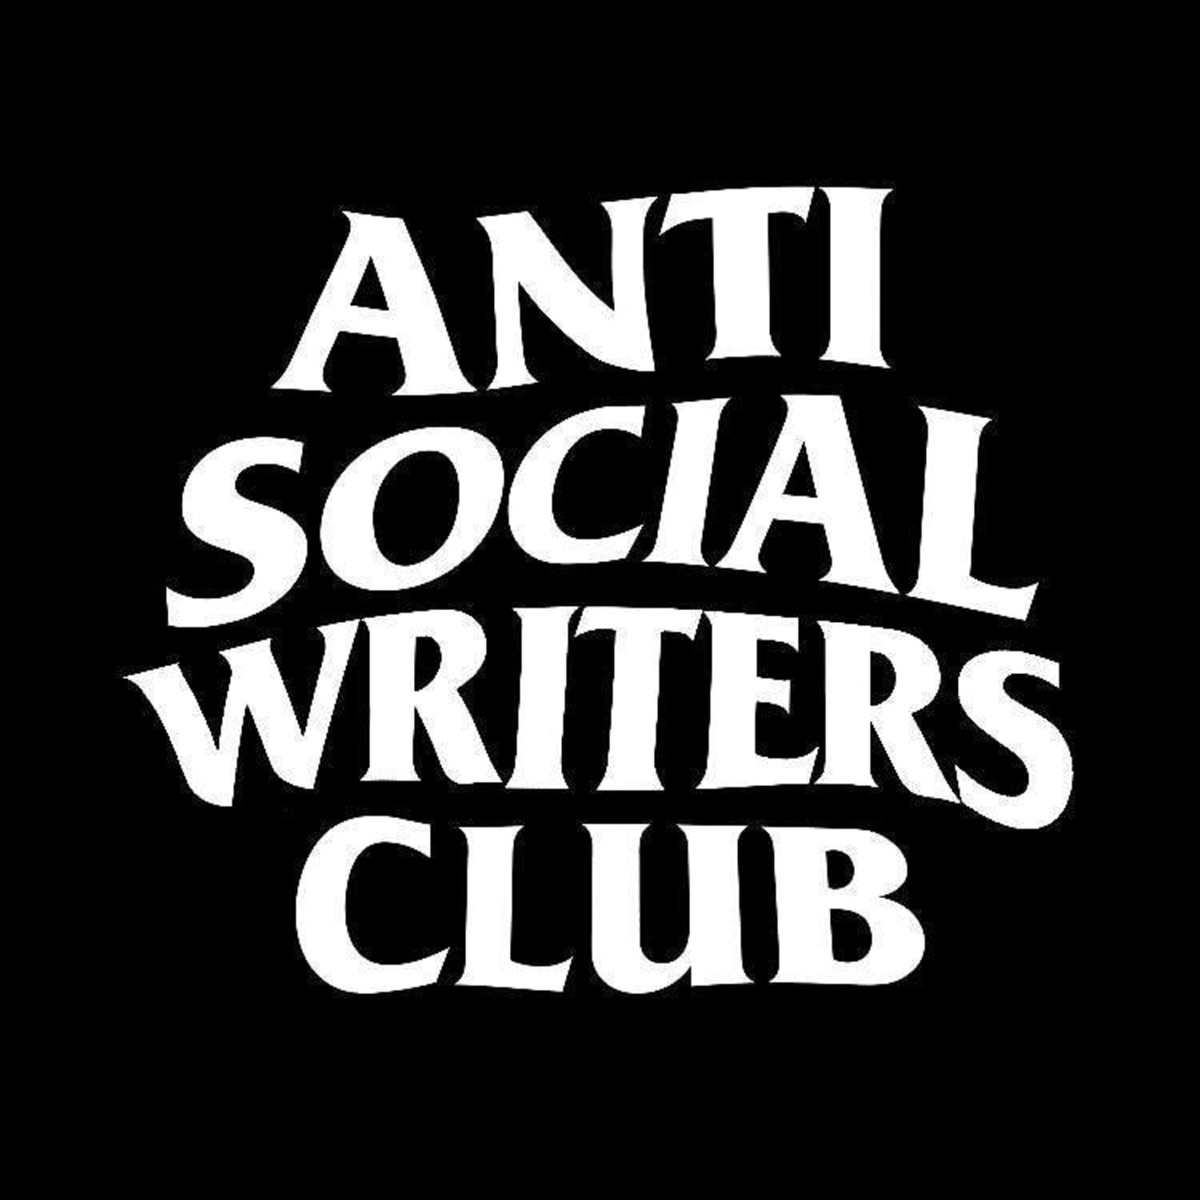 Anti Social Writers Club